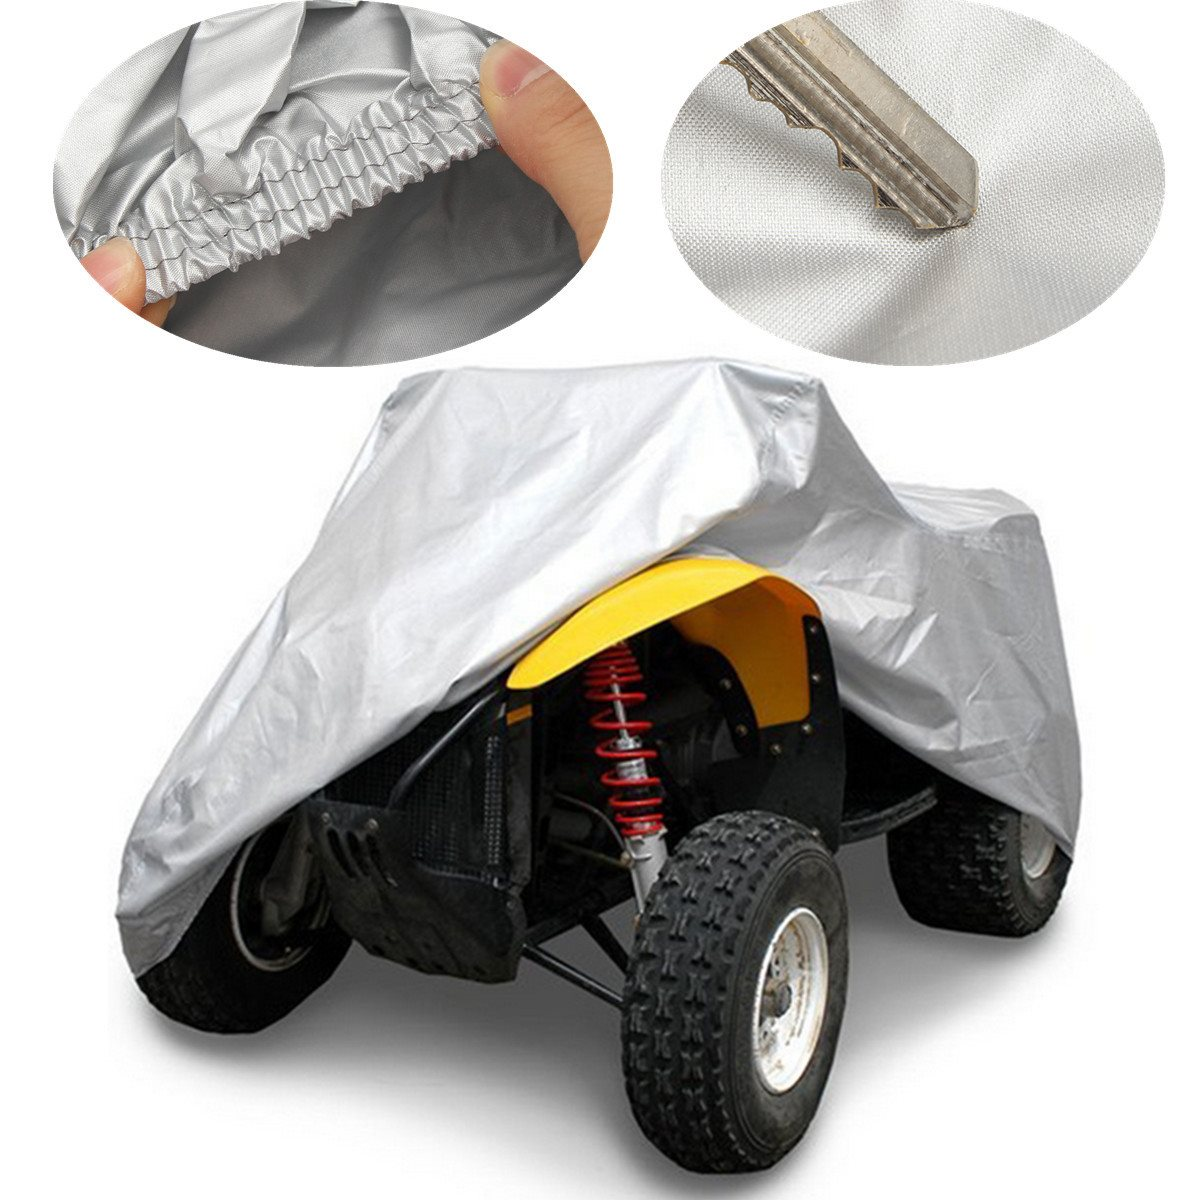 NEVERLAND XL 190T ATV Cover Universal Water Resistant Protector Fits up to 800cc